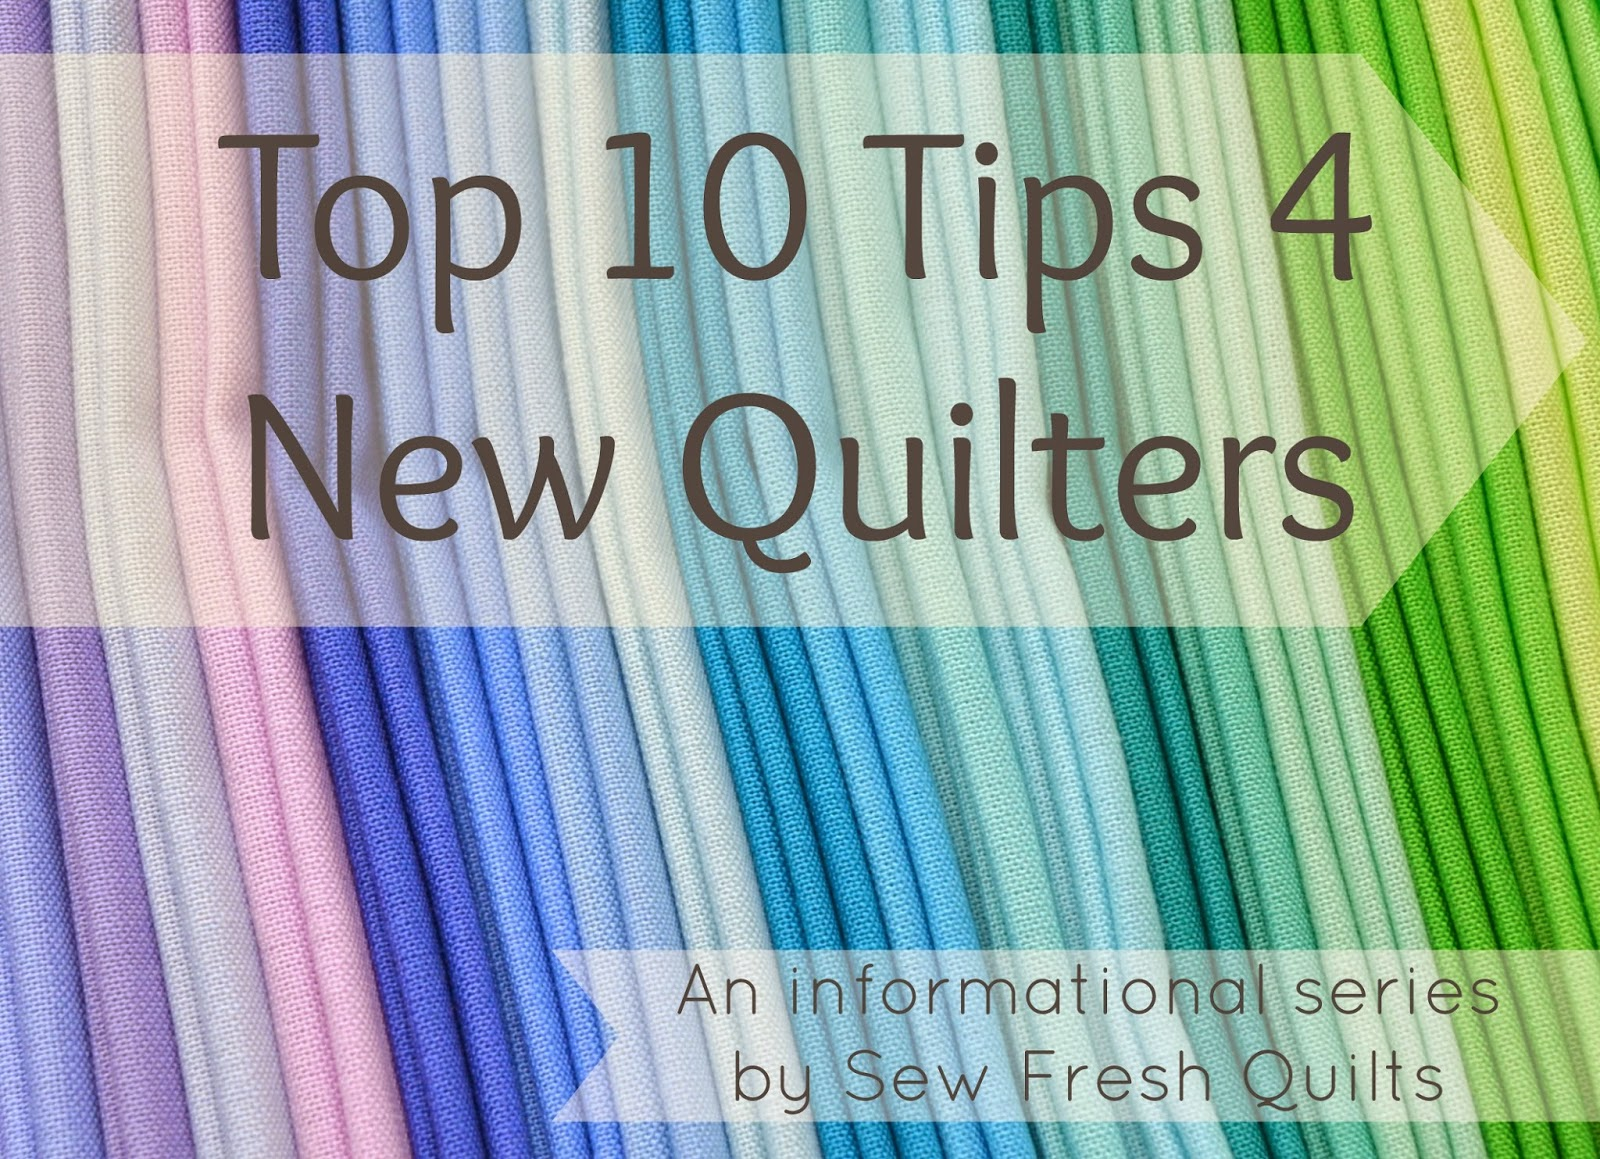 http://sewfreshquilts.blogspot.ca/2014/08/top-10-tips-for-new-quilters